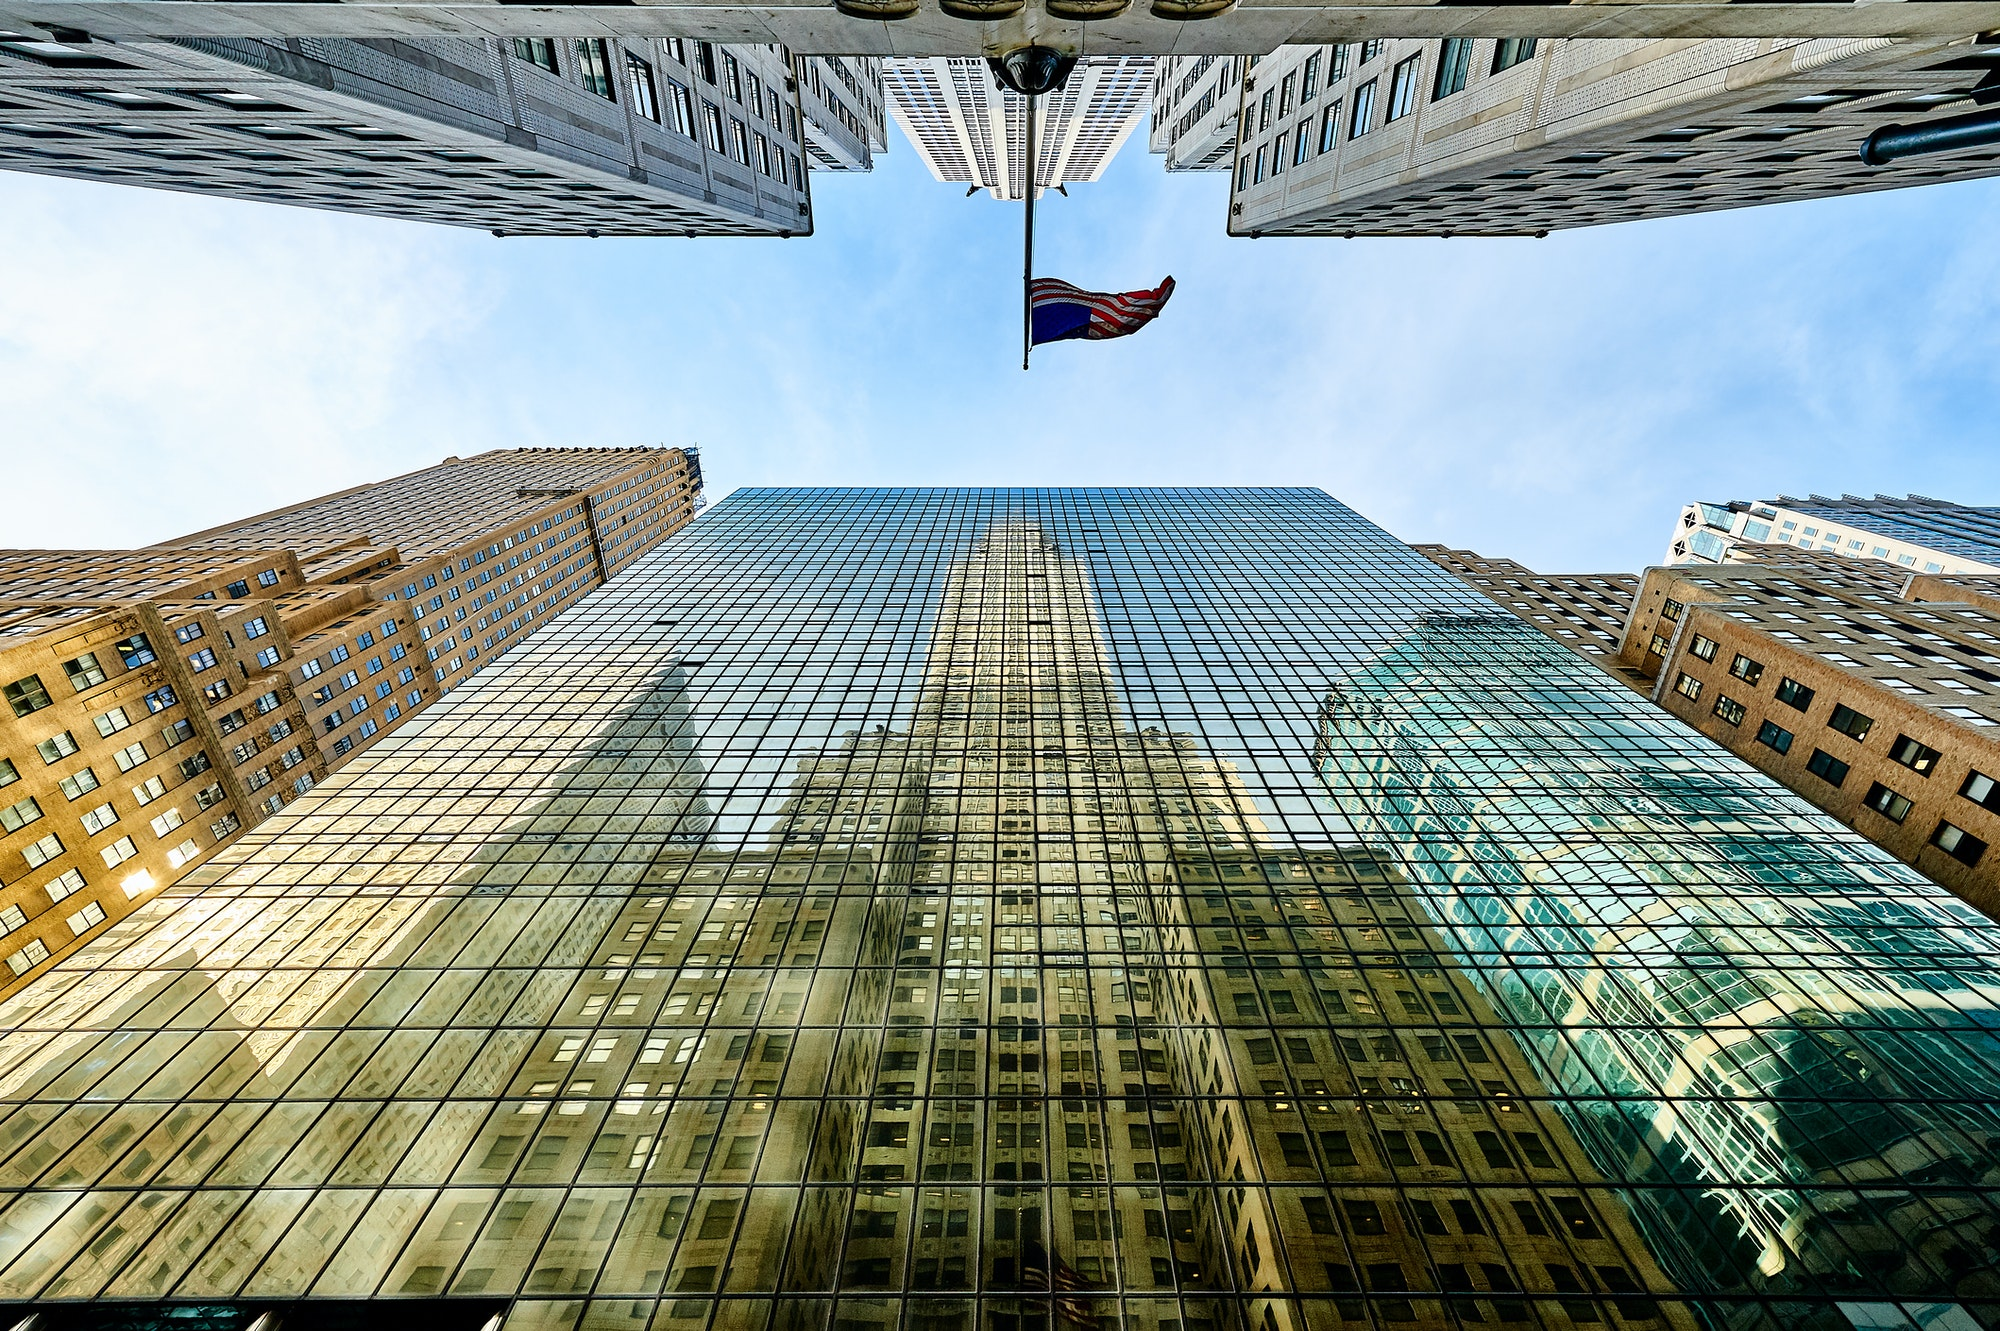 Building reflection in windows of another building in New York